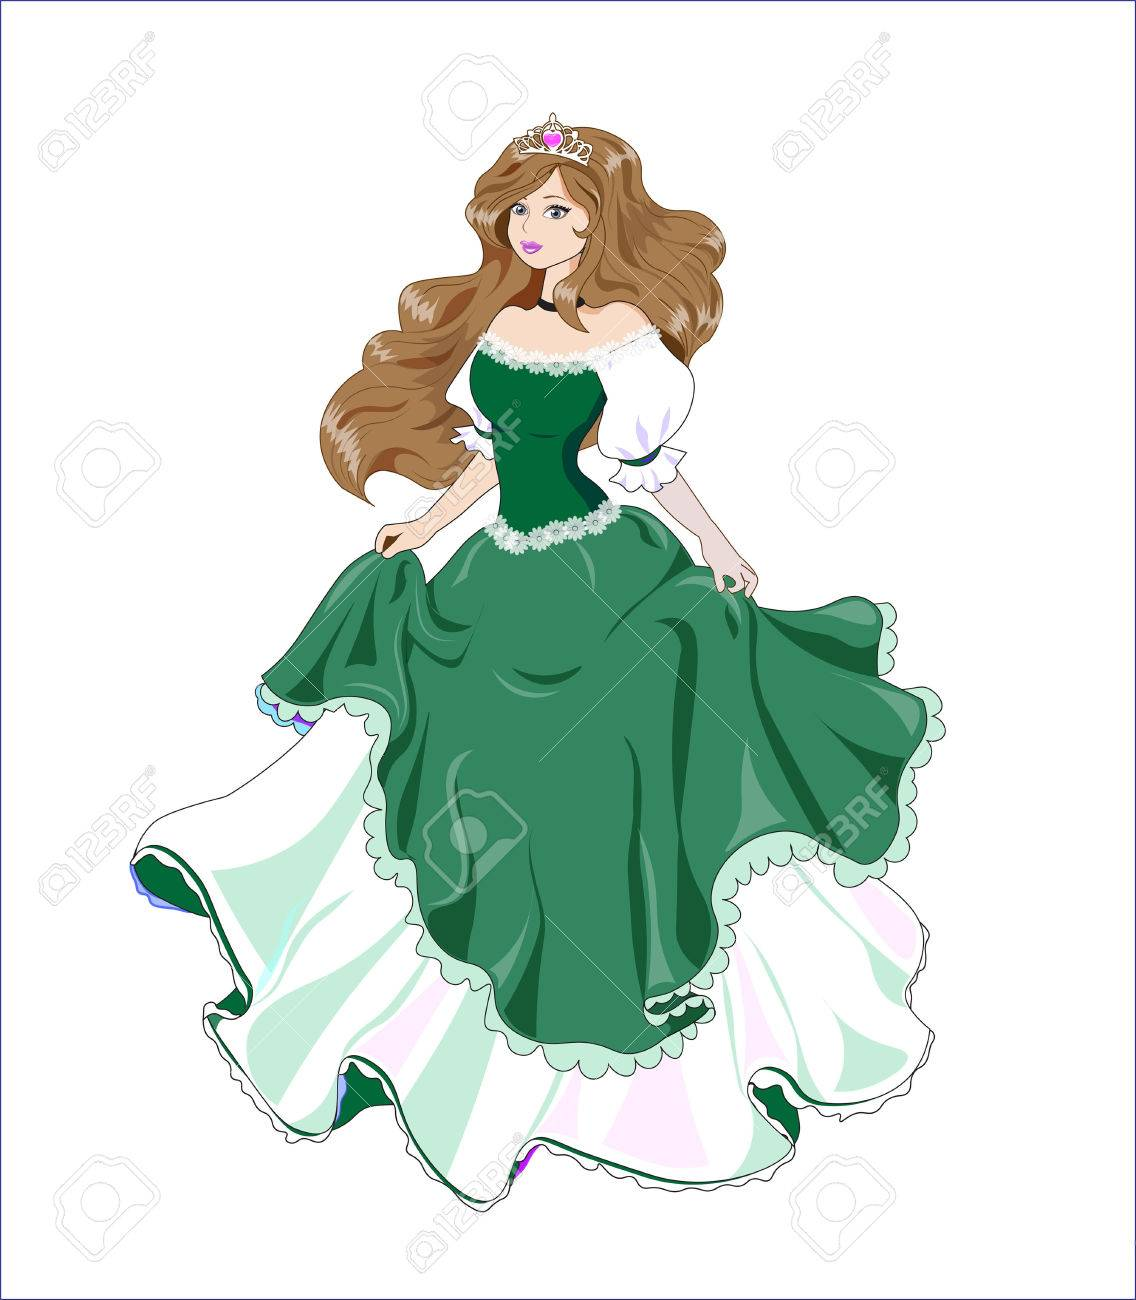 Great Princess With Brown Hair In A Ball Green Dress Royalty Free